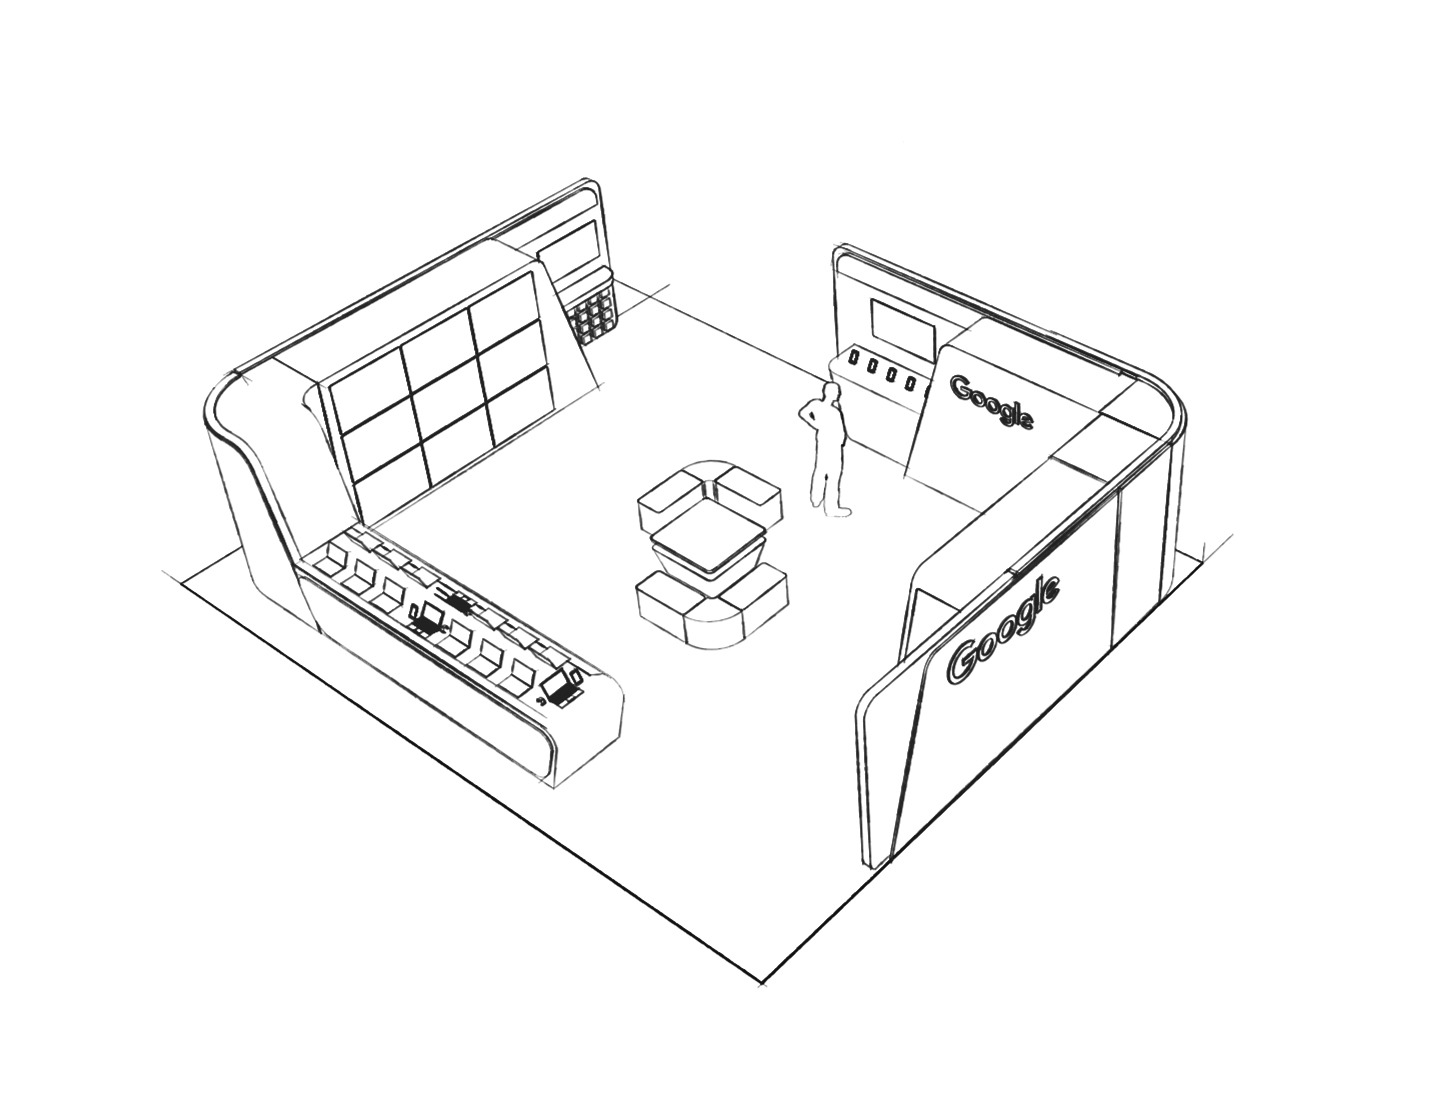 Google Store sketched mock up of retail design space